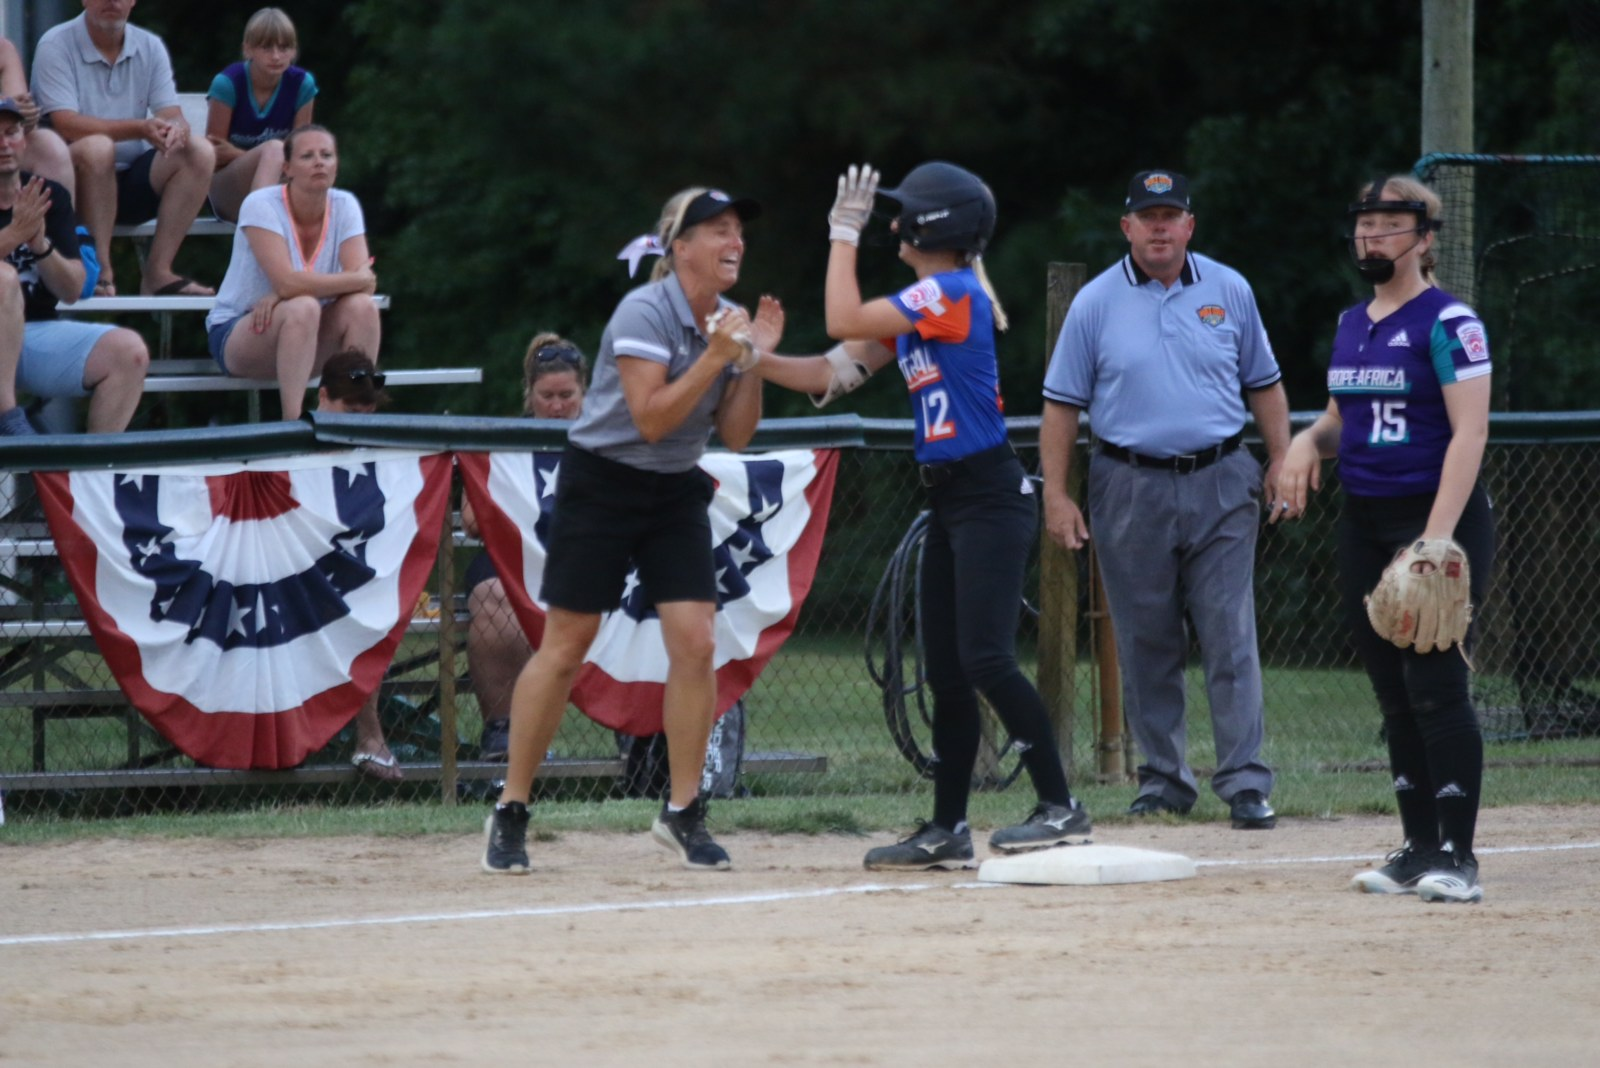 A photo of Lauren Schwallier of the District 9 team. (Courtesy)